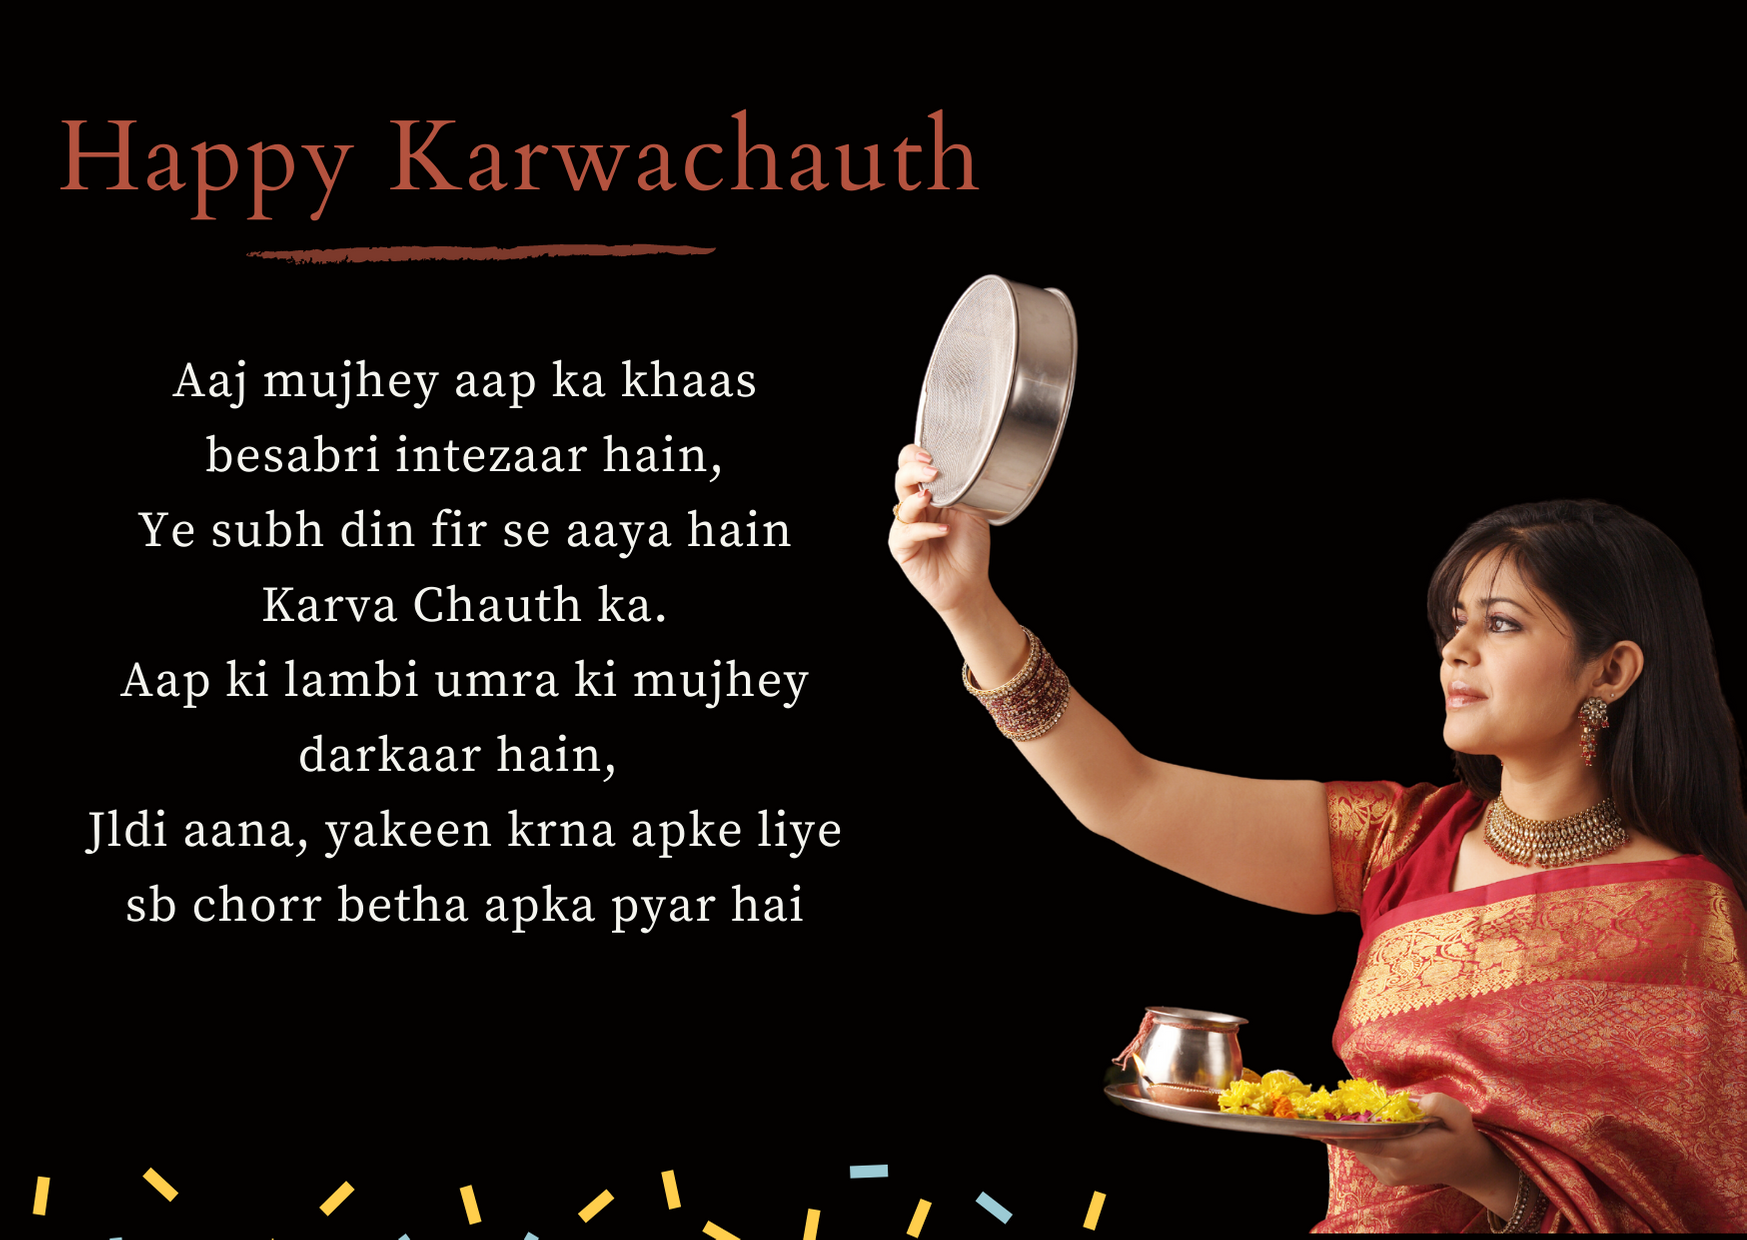 karwa chauth caption for fb